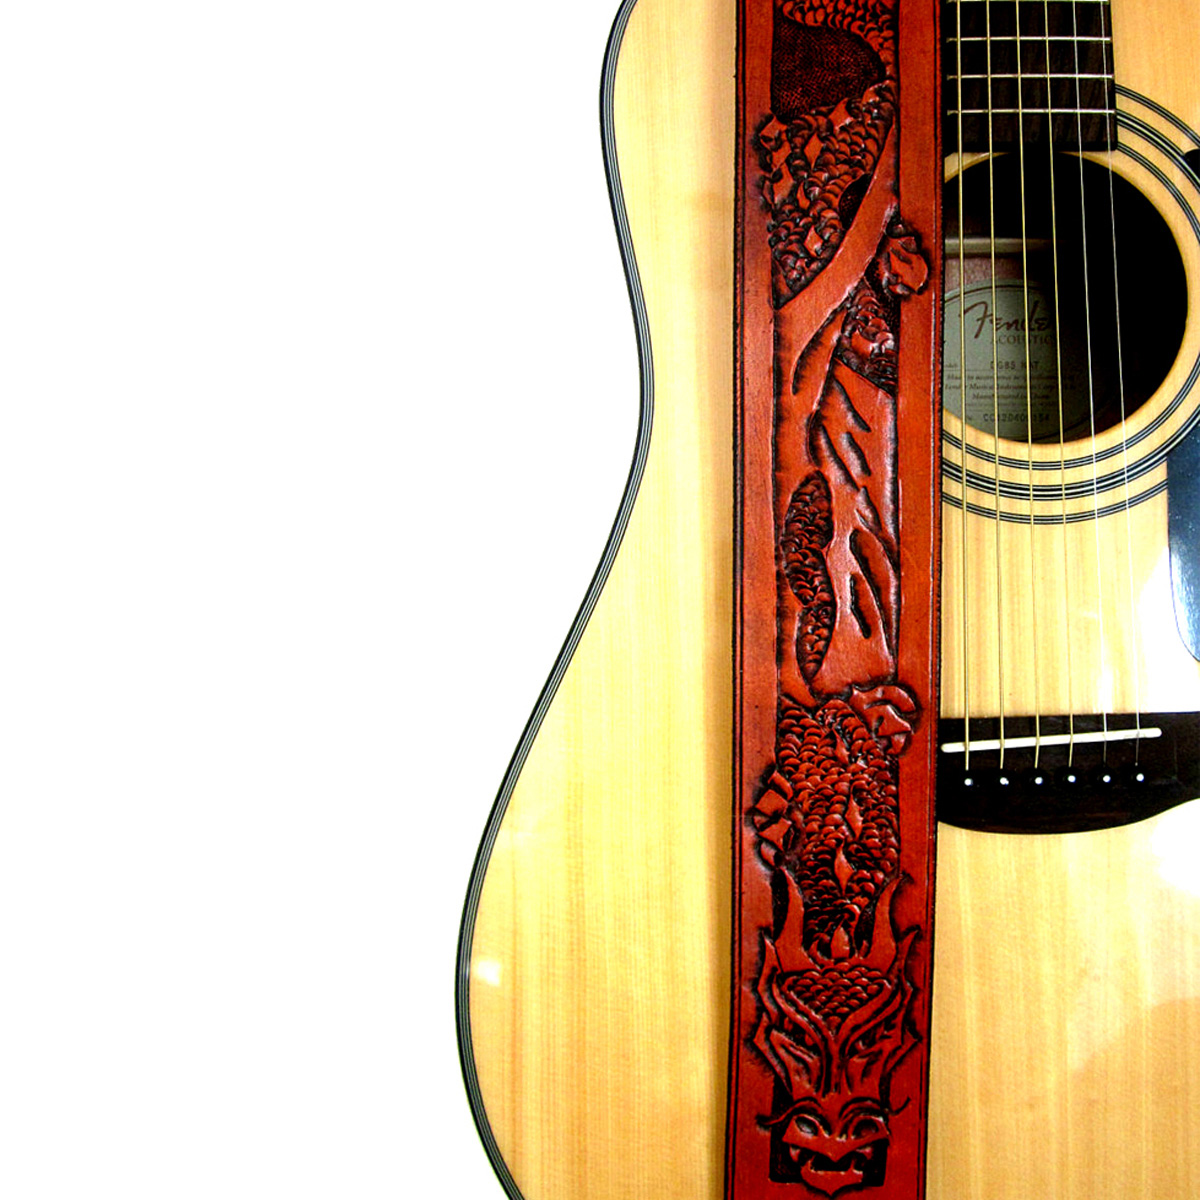 dragon-hand-tooled-leather-guitar-strap-the-leather-smithy_1